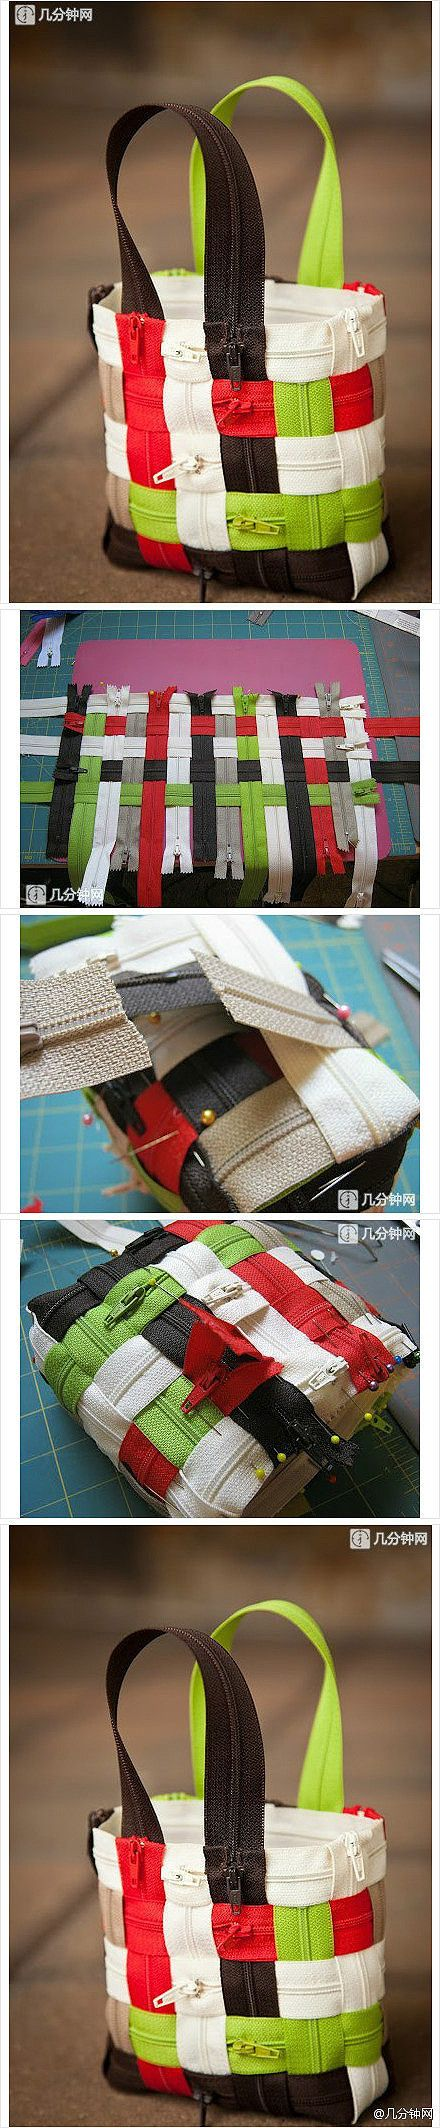 DIY handbag from zipper - might want to try it someday. Someday. For fun.